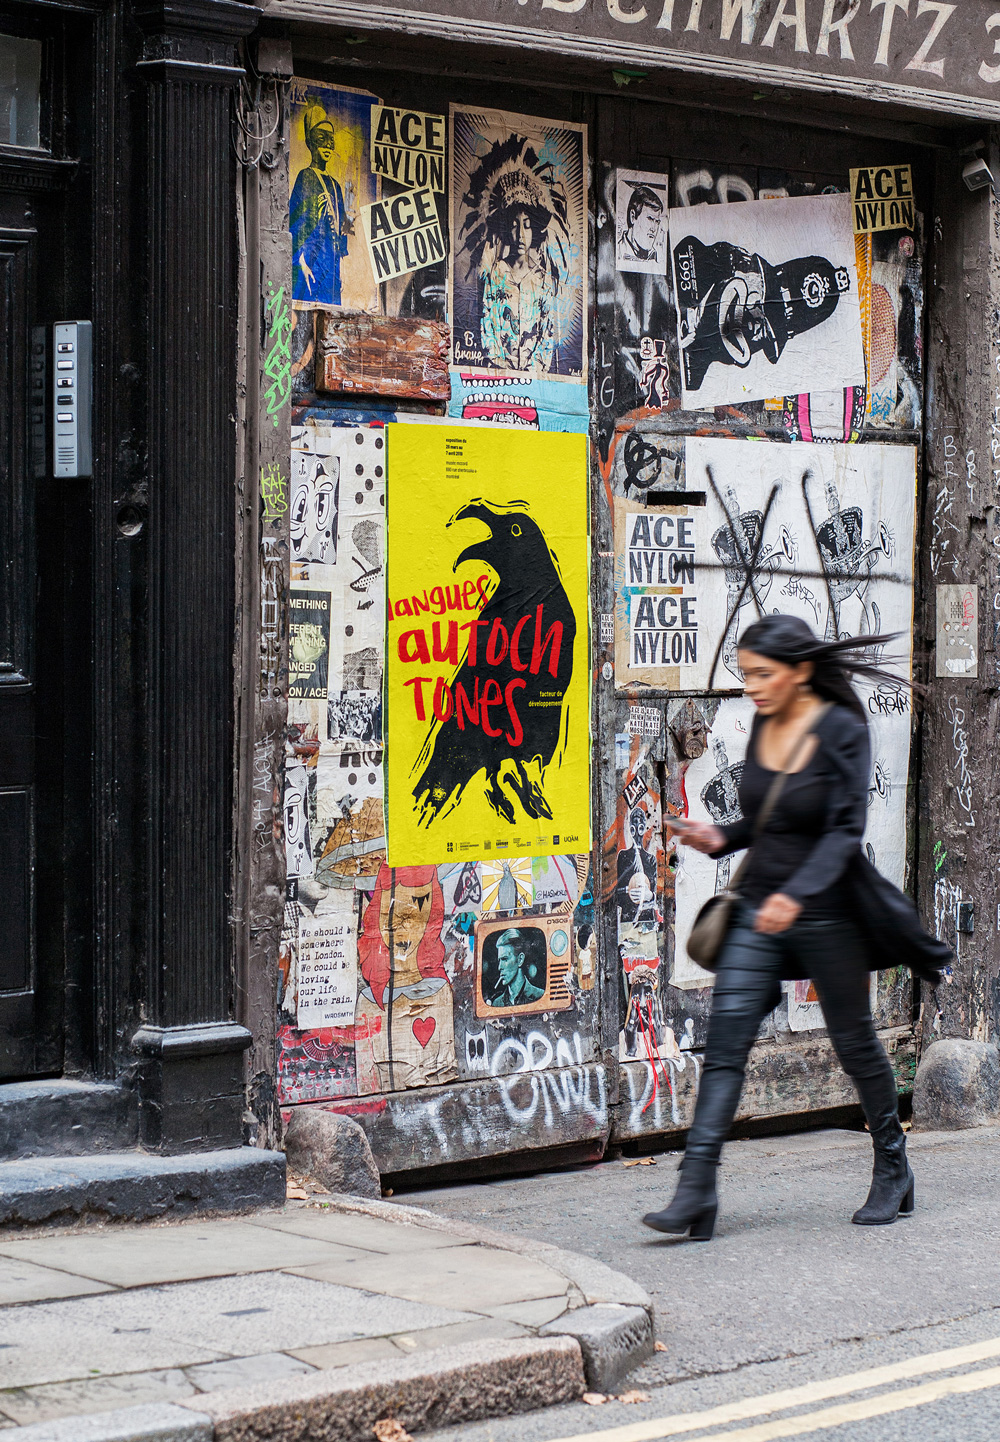 A yellow poster with a black crow and red typography seen somewhere outdoors